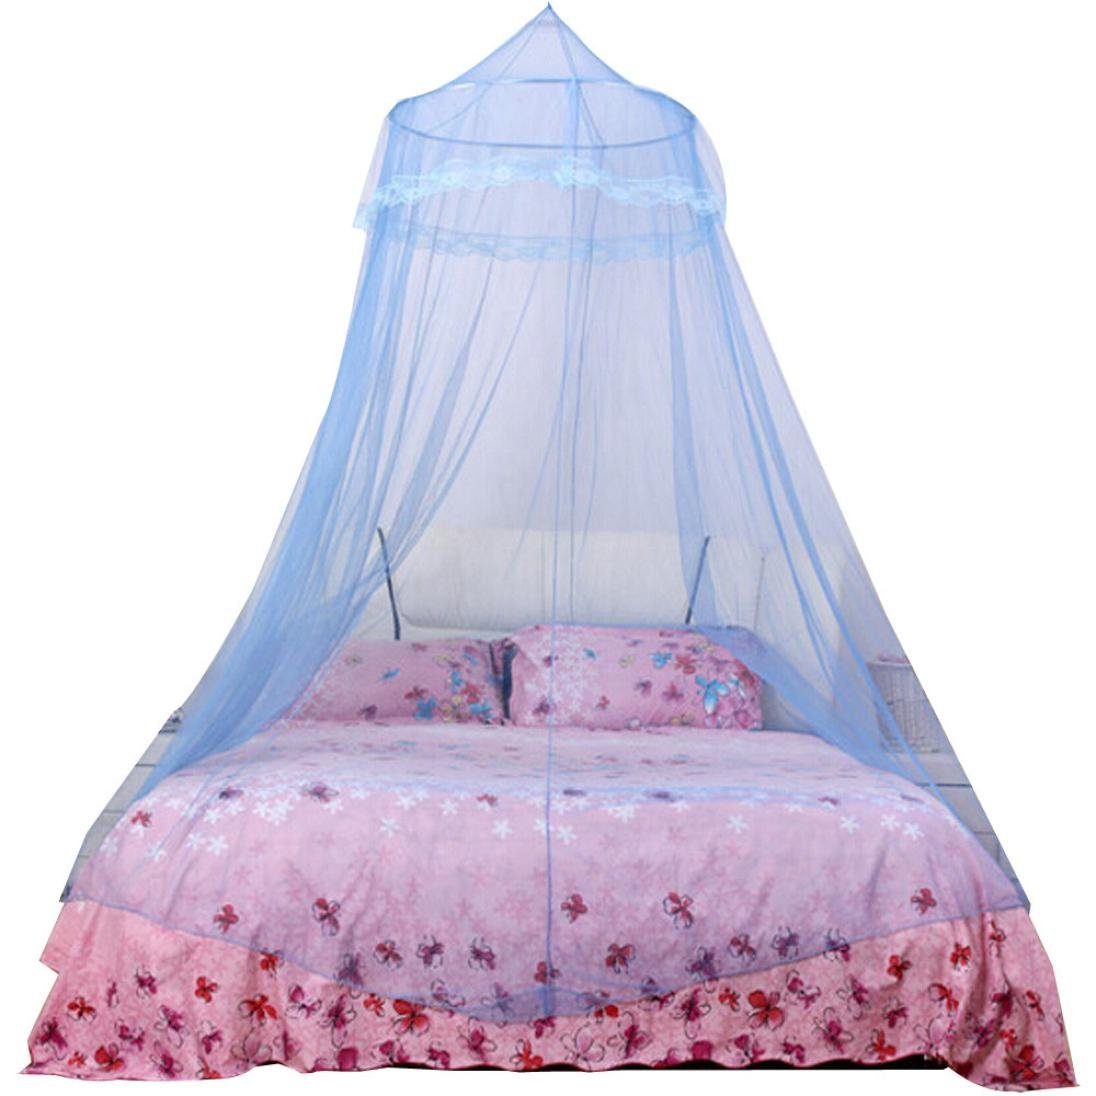 Elevin Insect Protection Dome Lace Mosquito Nets Indoor Outdoor Play Tent Bed Canopy TM Mosquito Net Bed Canopy White